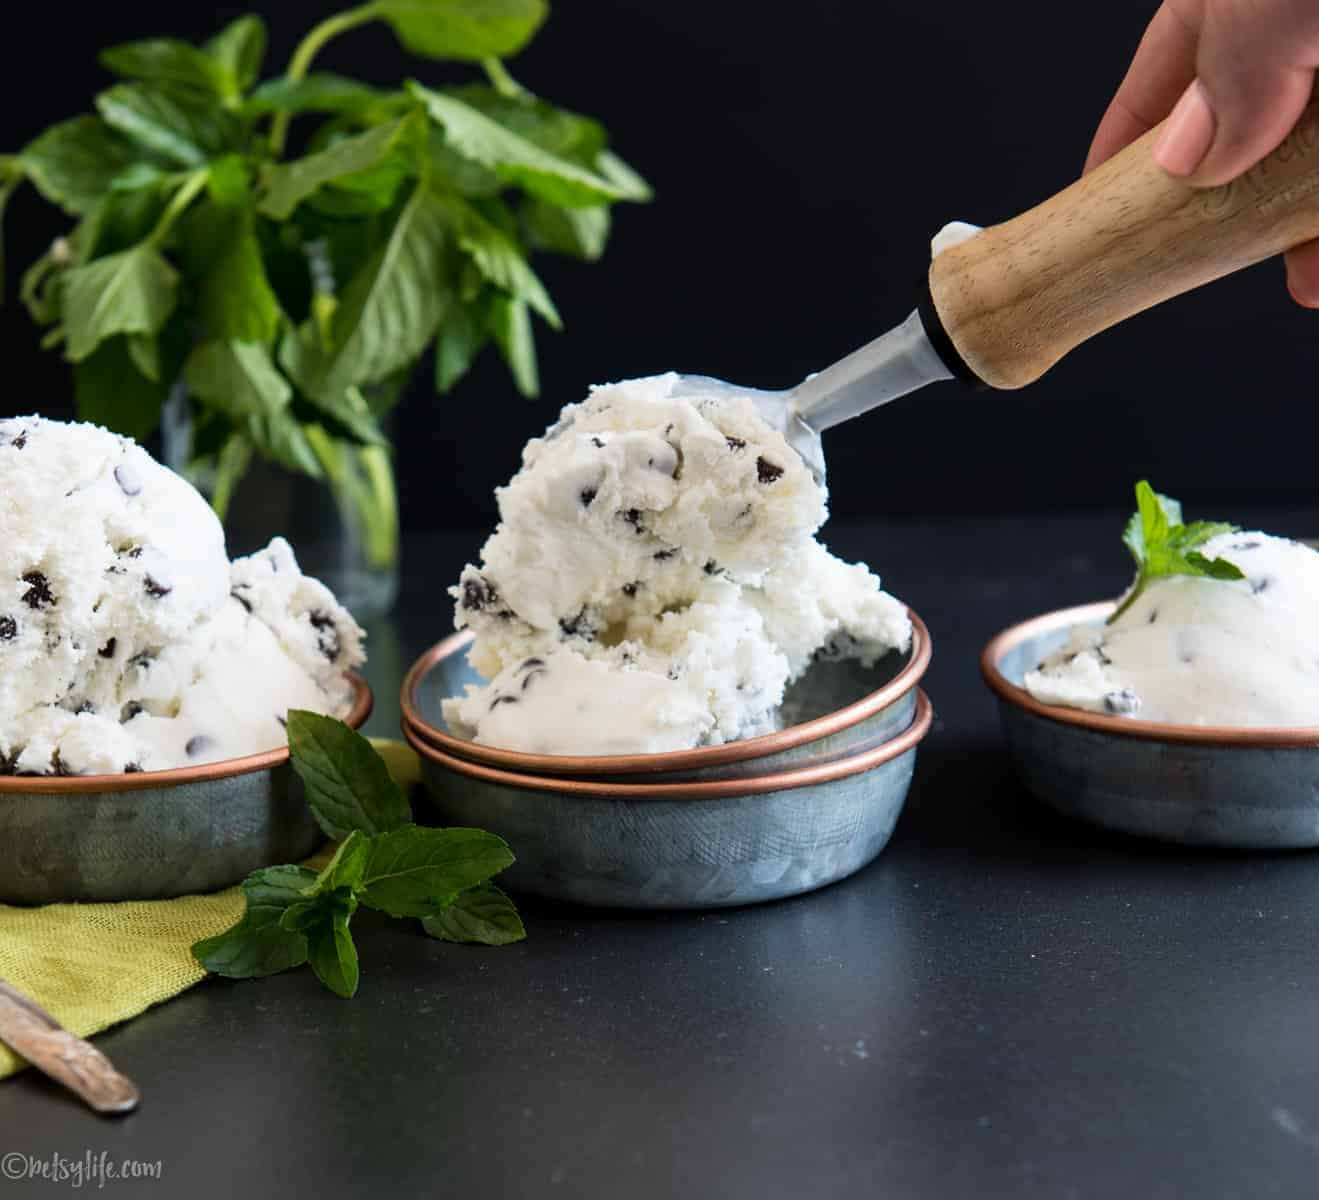 hand scooping mint chip ice cream into one of three metal bowls. Fresh mint in the background